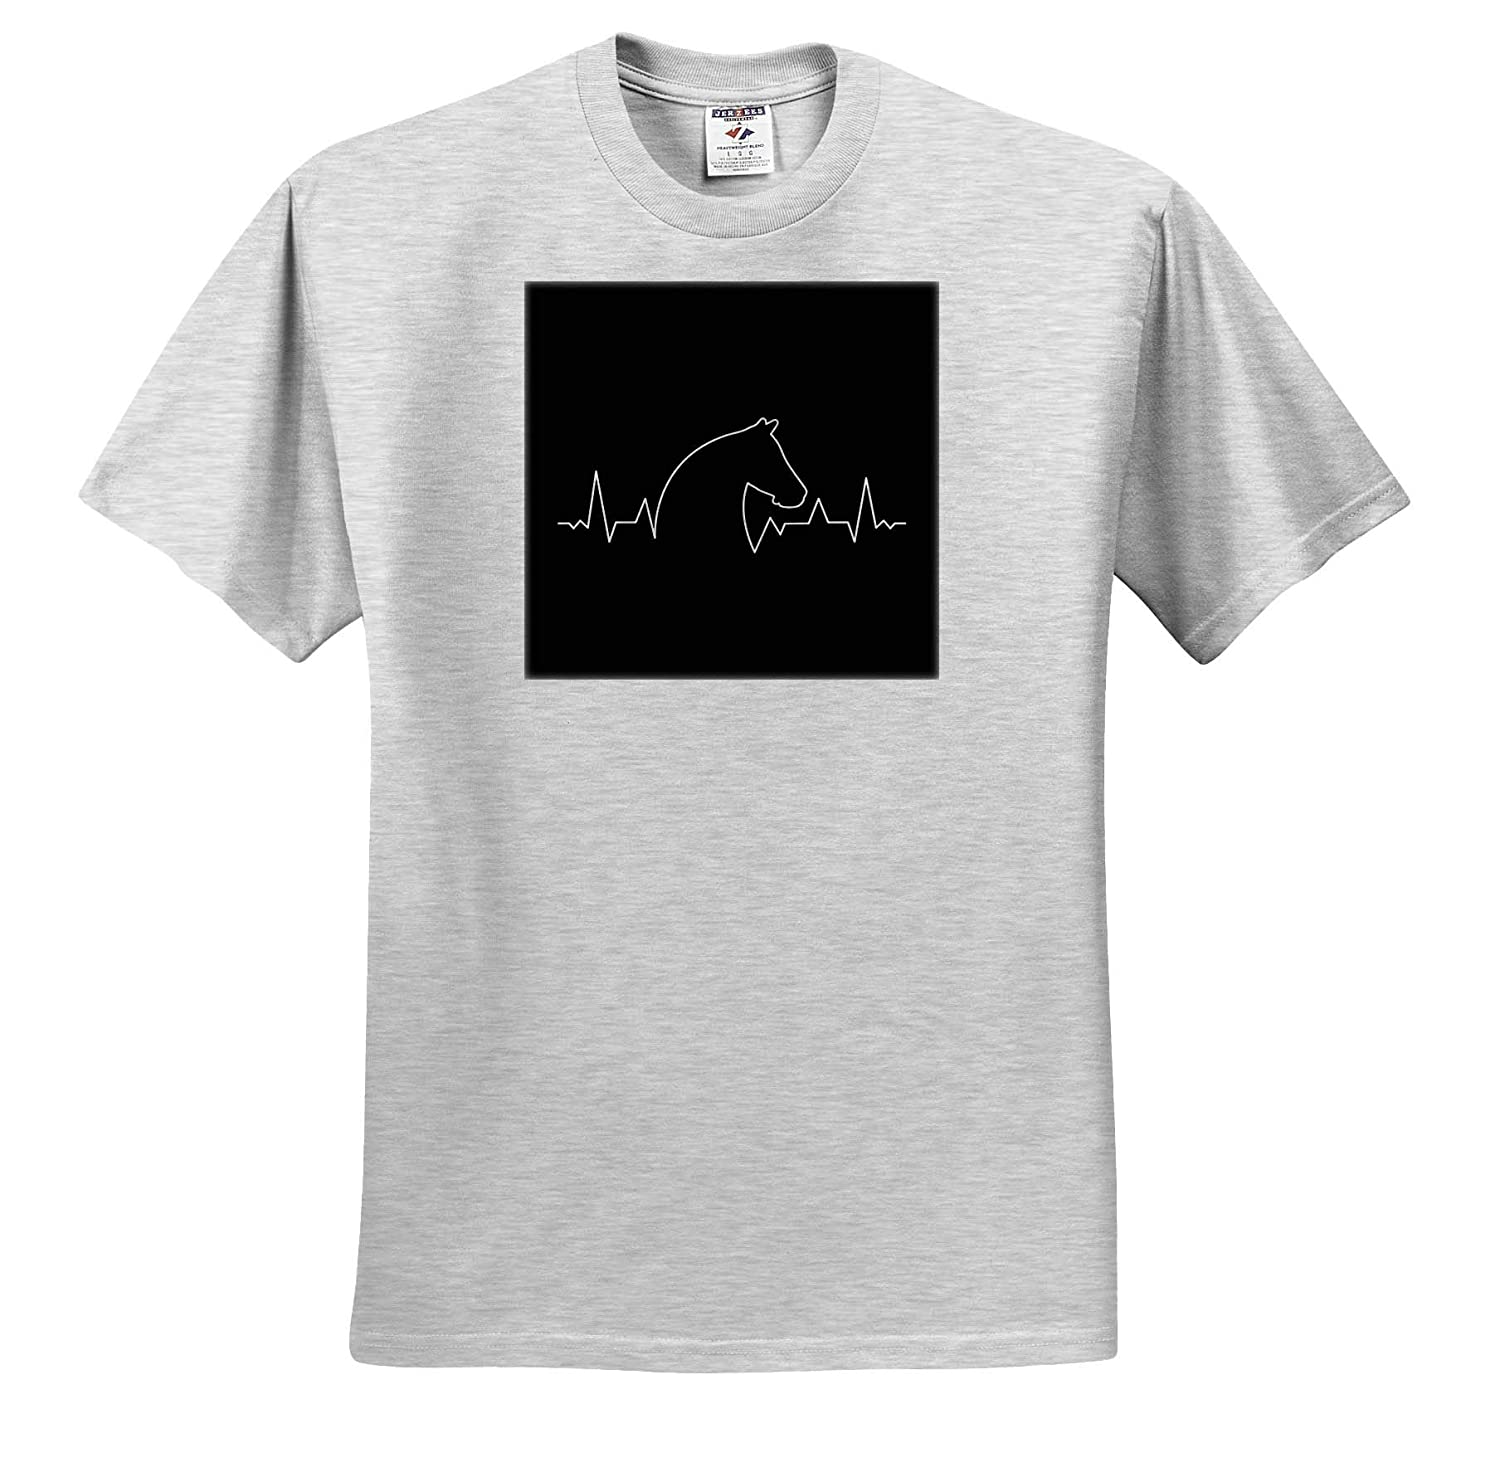 T-Shirts 3dRose Sven Herkenrath Animal Heartbeat Graphic with Horse Horse Portrait Equestrian